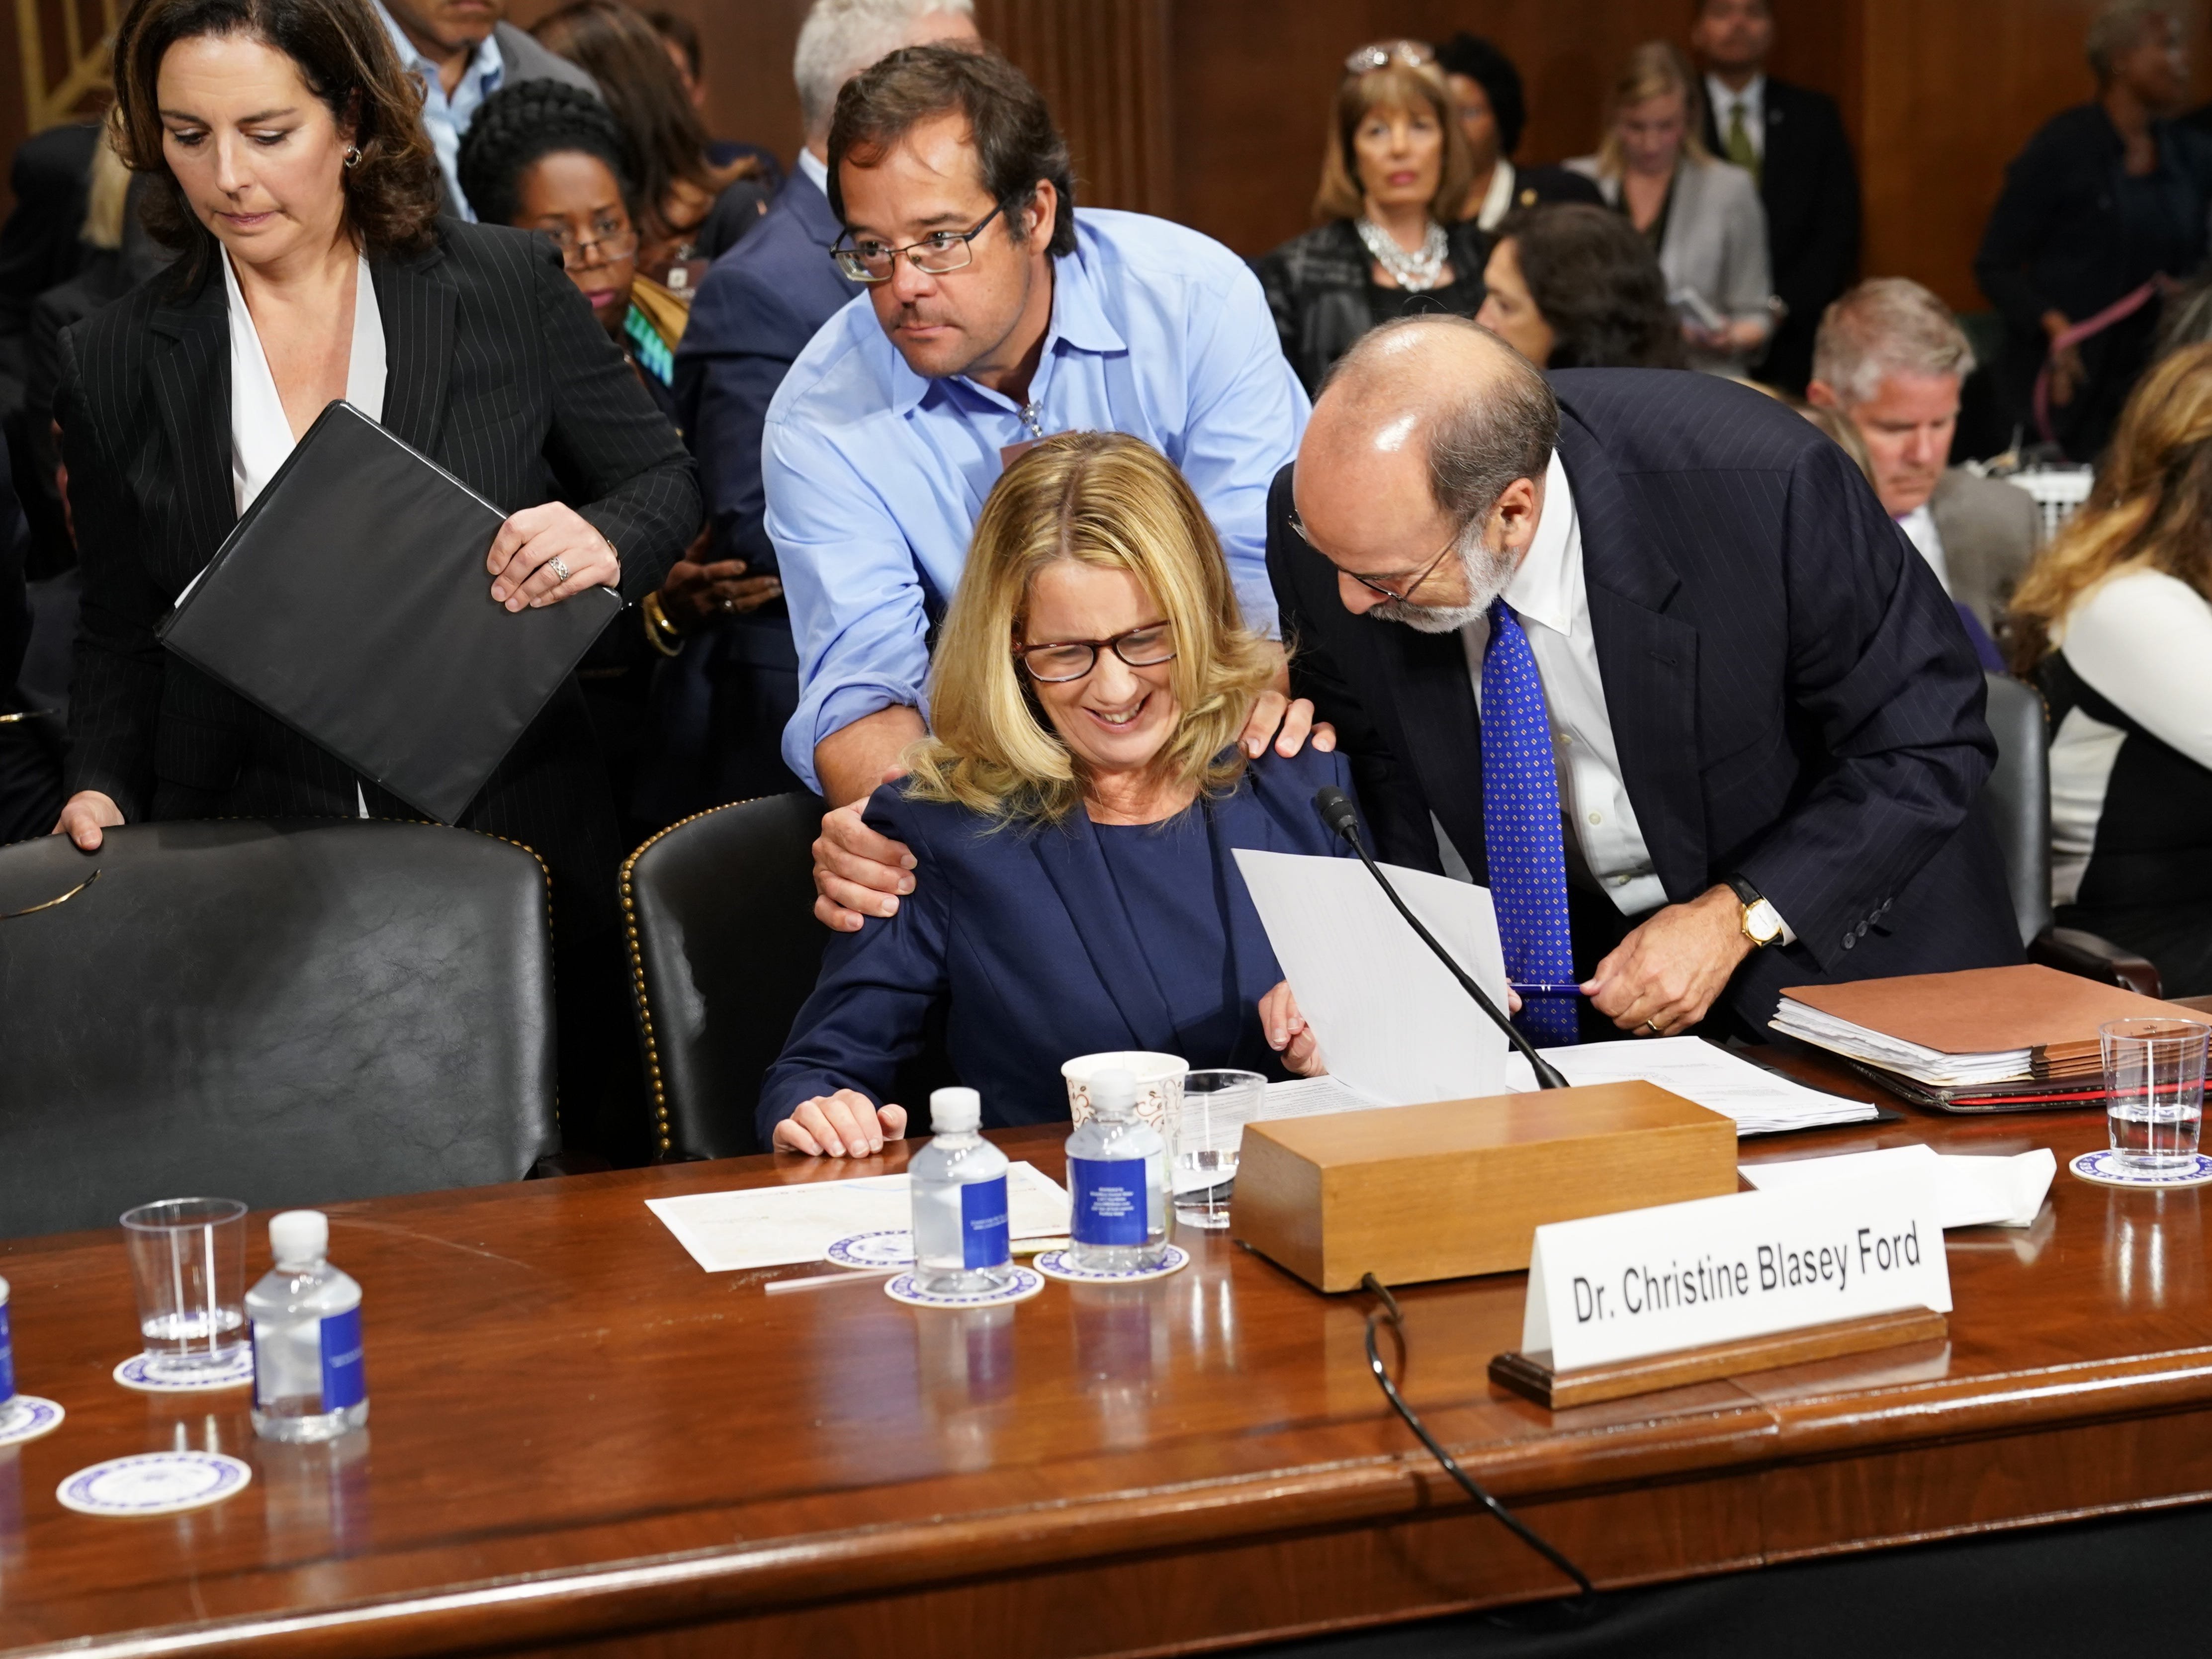 WASHINGTON, DC - SEPTEMBER 27:   Christine Blasey Ford takes a break from testifying at a U.S. Senate Judiciary Committee hearing at the Dirksen Senate Office Building on Capitol Hill September 27, 2018 in Washington, DC. Blasey Ford, a professor at Palo Alto University and a research psychologist at the Stanford University School of Medicine, has accused Supreme Court nominee Brett Kavanaugh of sexually assaulting her during a party in 1982 when they were high school students in suburban Maryland.  (Photo by Andrew Harnik-Pool/Getty Images) ORG XMIT: 775234142 ORIG FILE ID: 1041746300